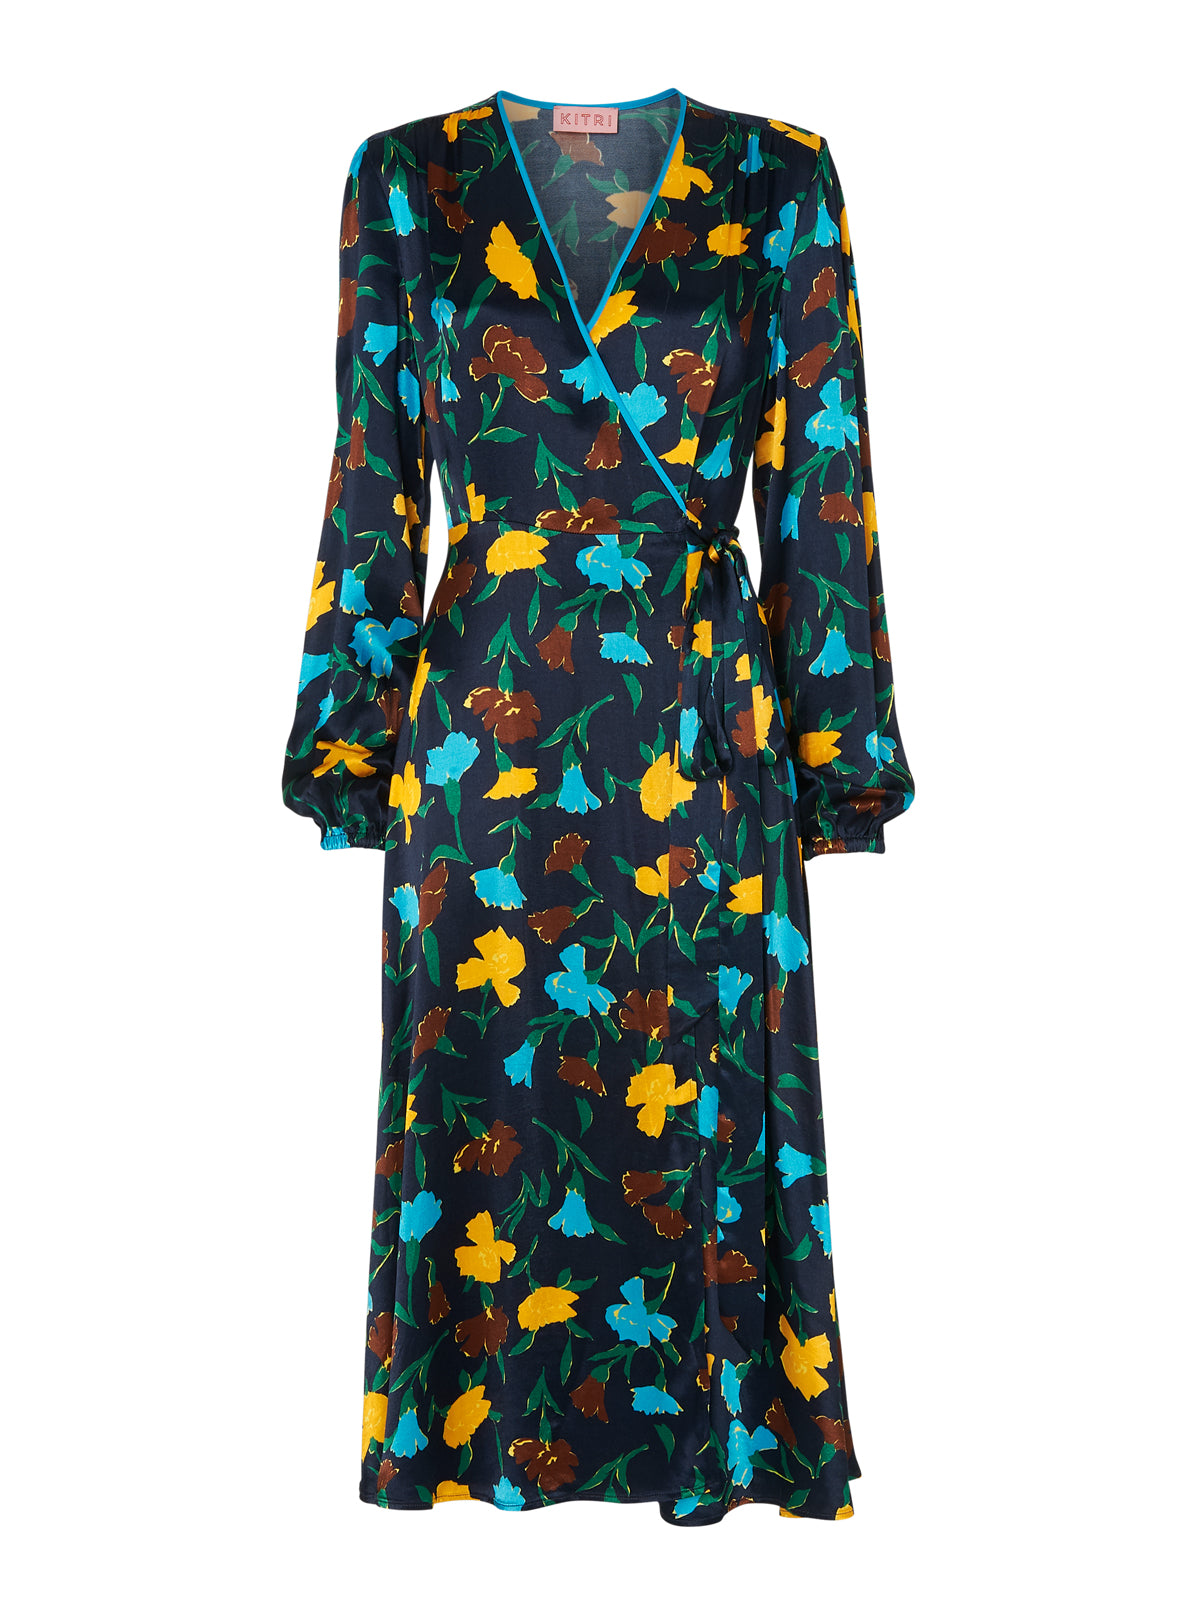 Diana Floral Print Wrap Dress by KITRI Studio